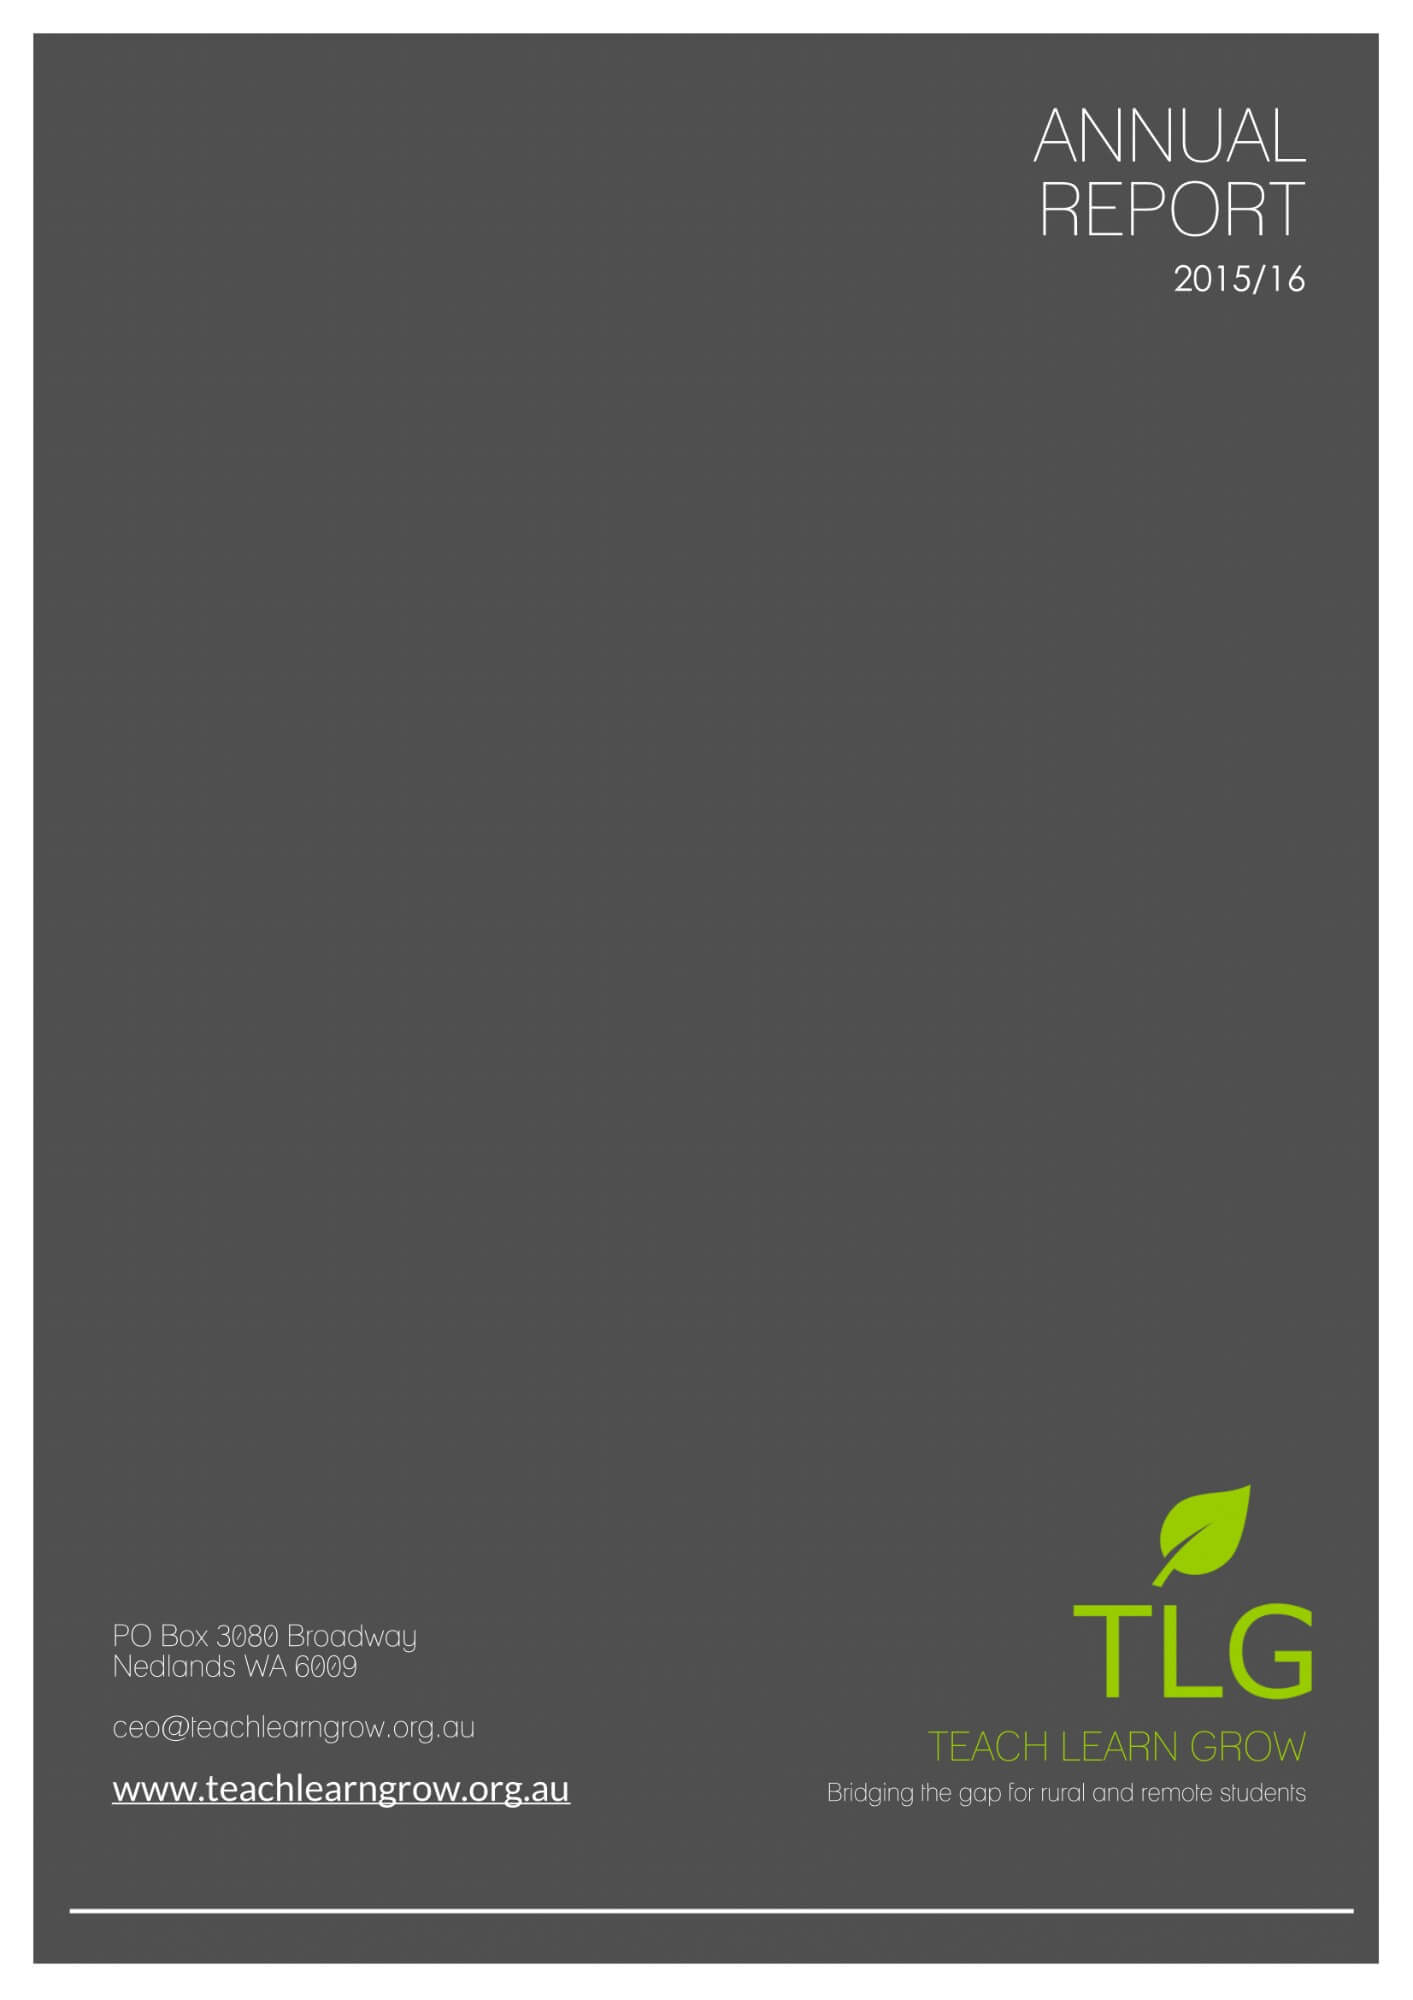 tlg-annual-report-FY15-16.jpg